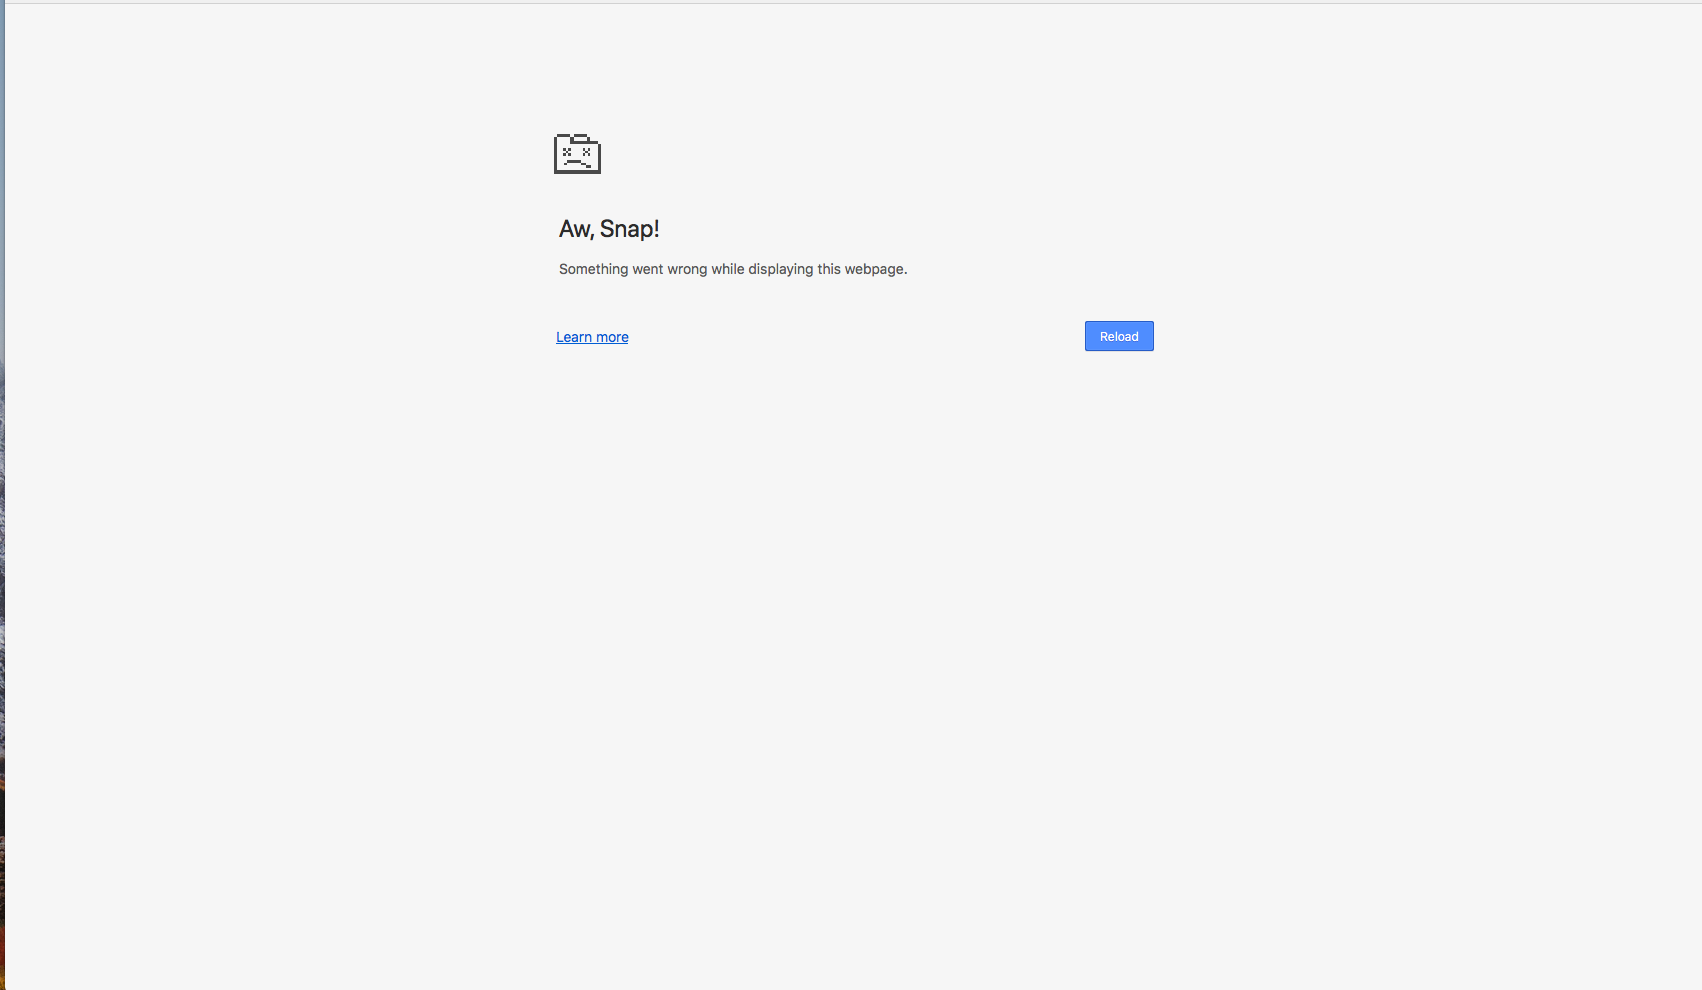 Uploading big files crush page in Chrome · Issue #654 · ipfs